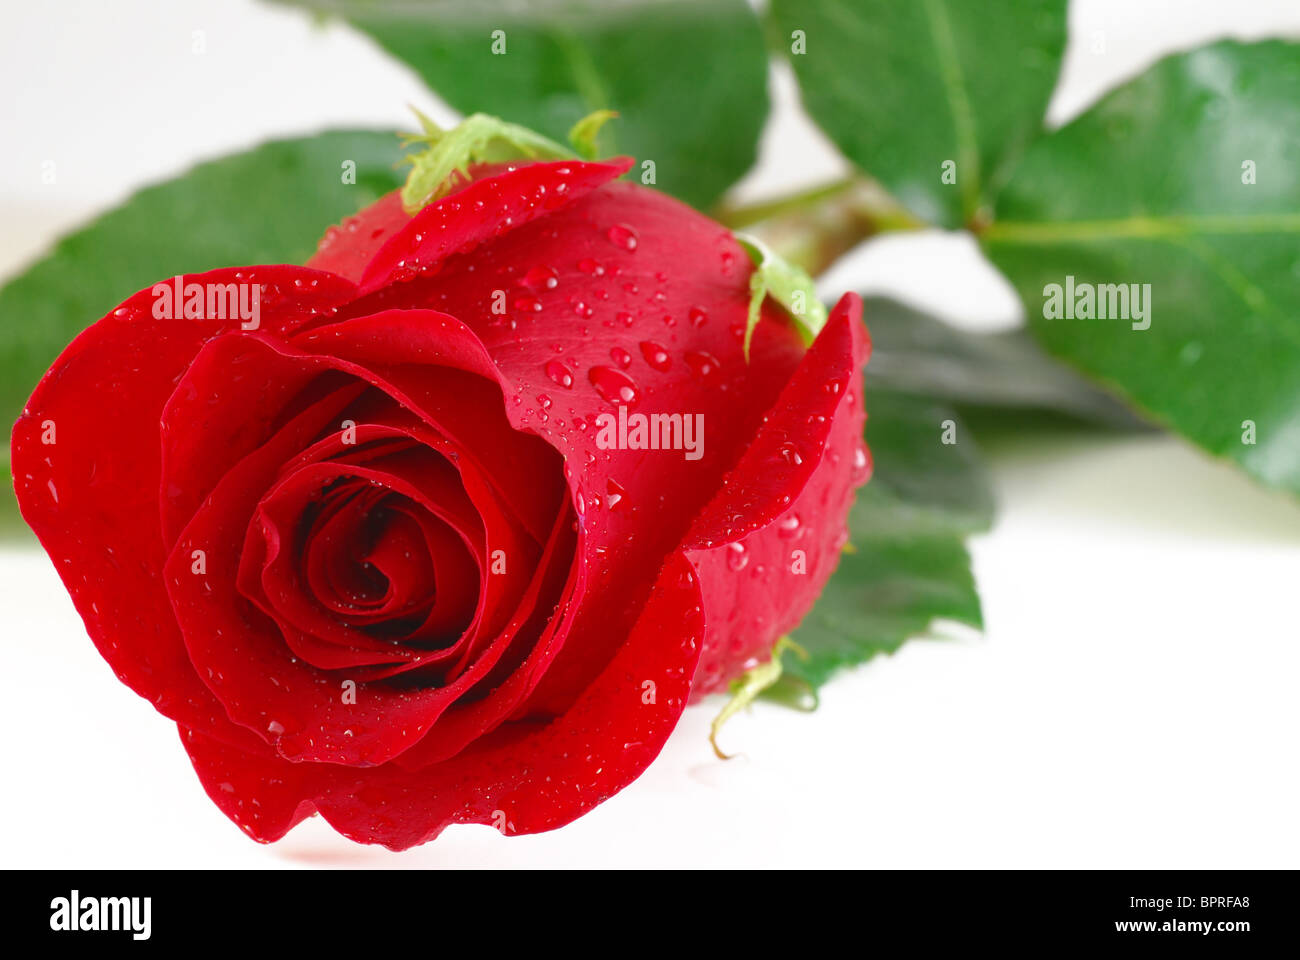 Red rose with drops on white background - Stock Image